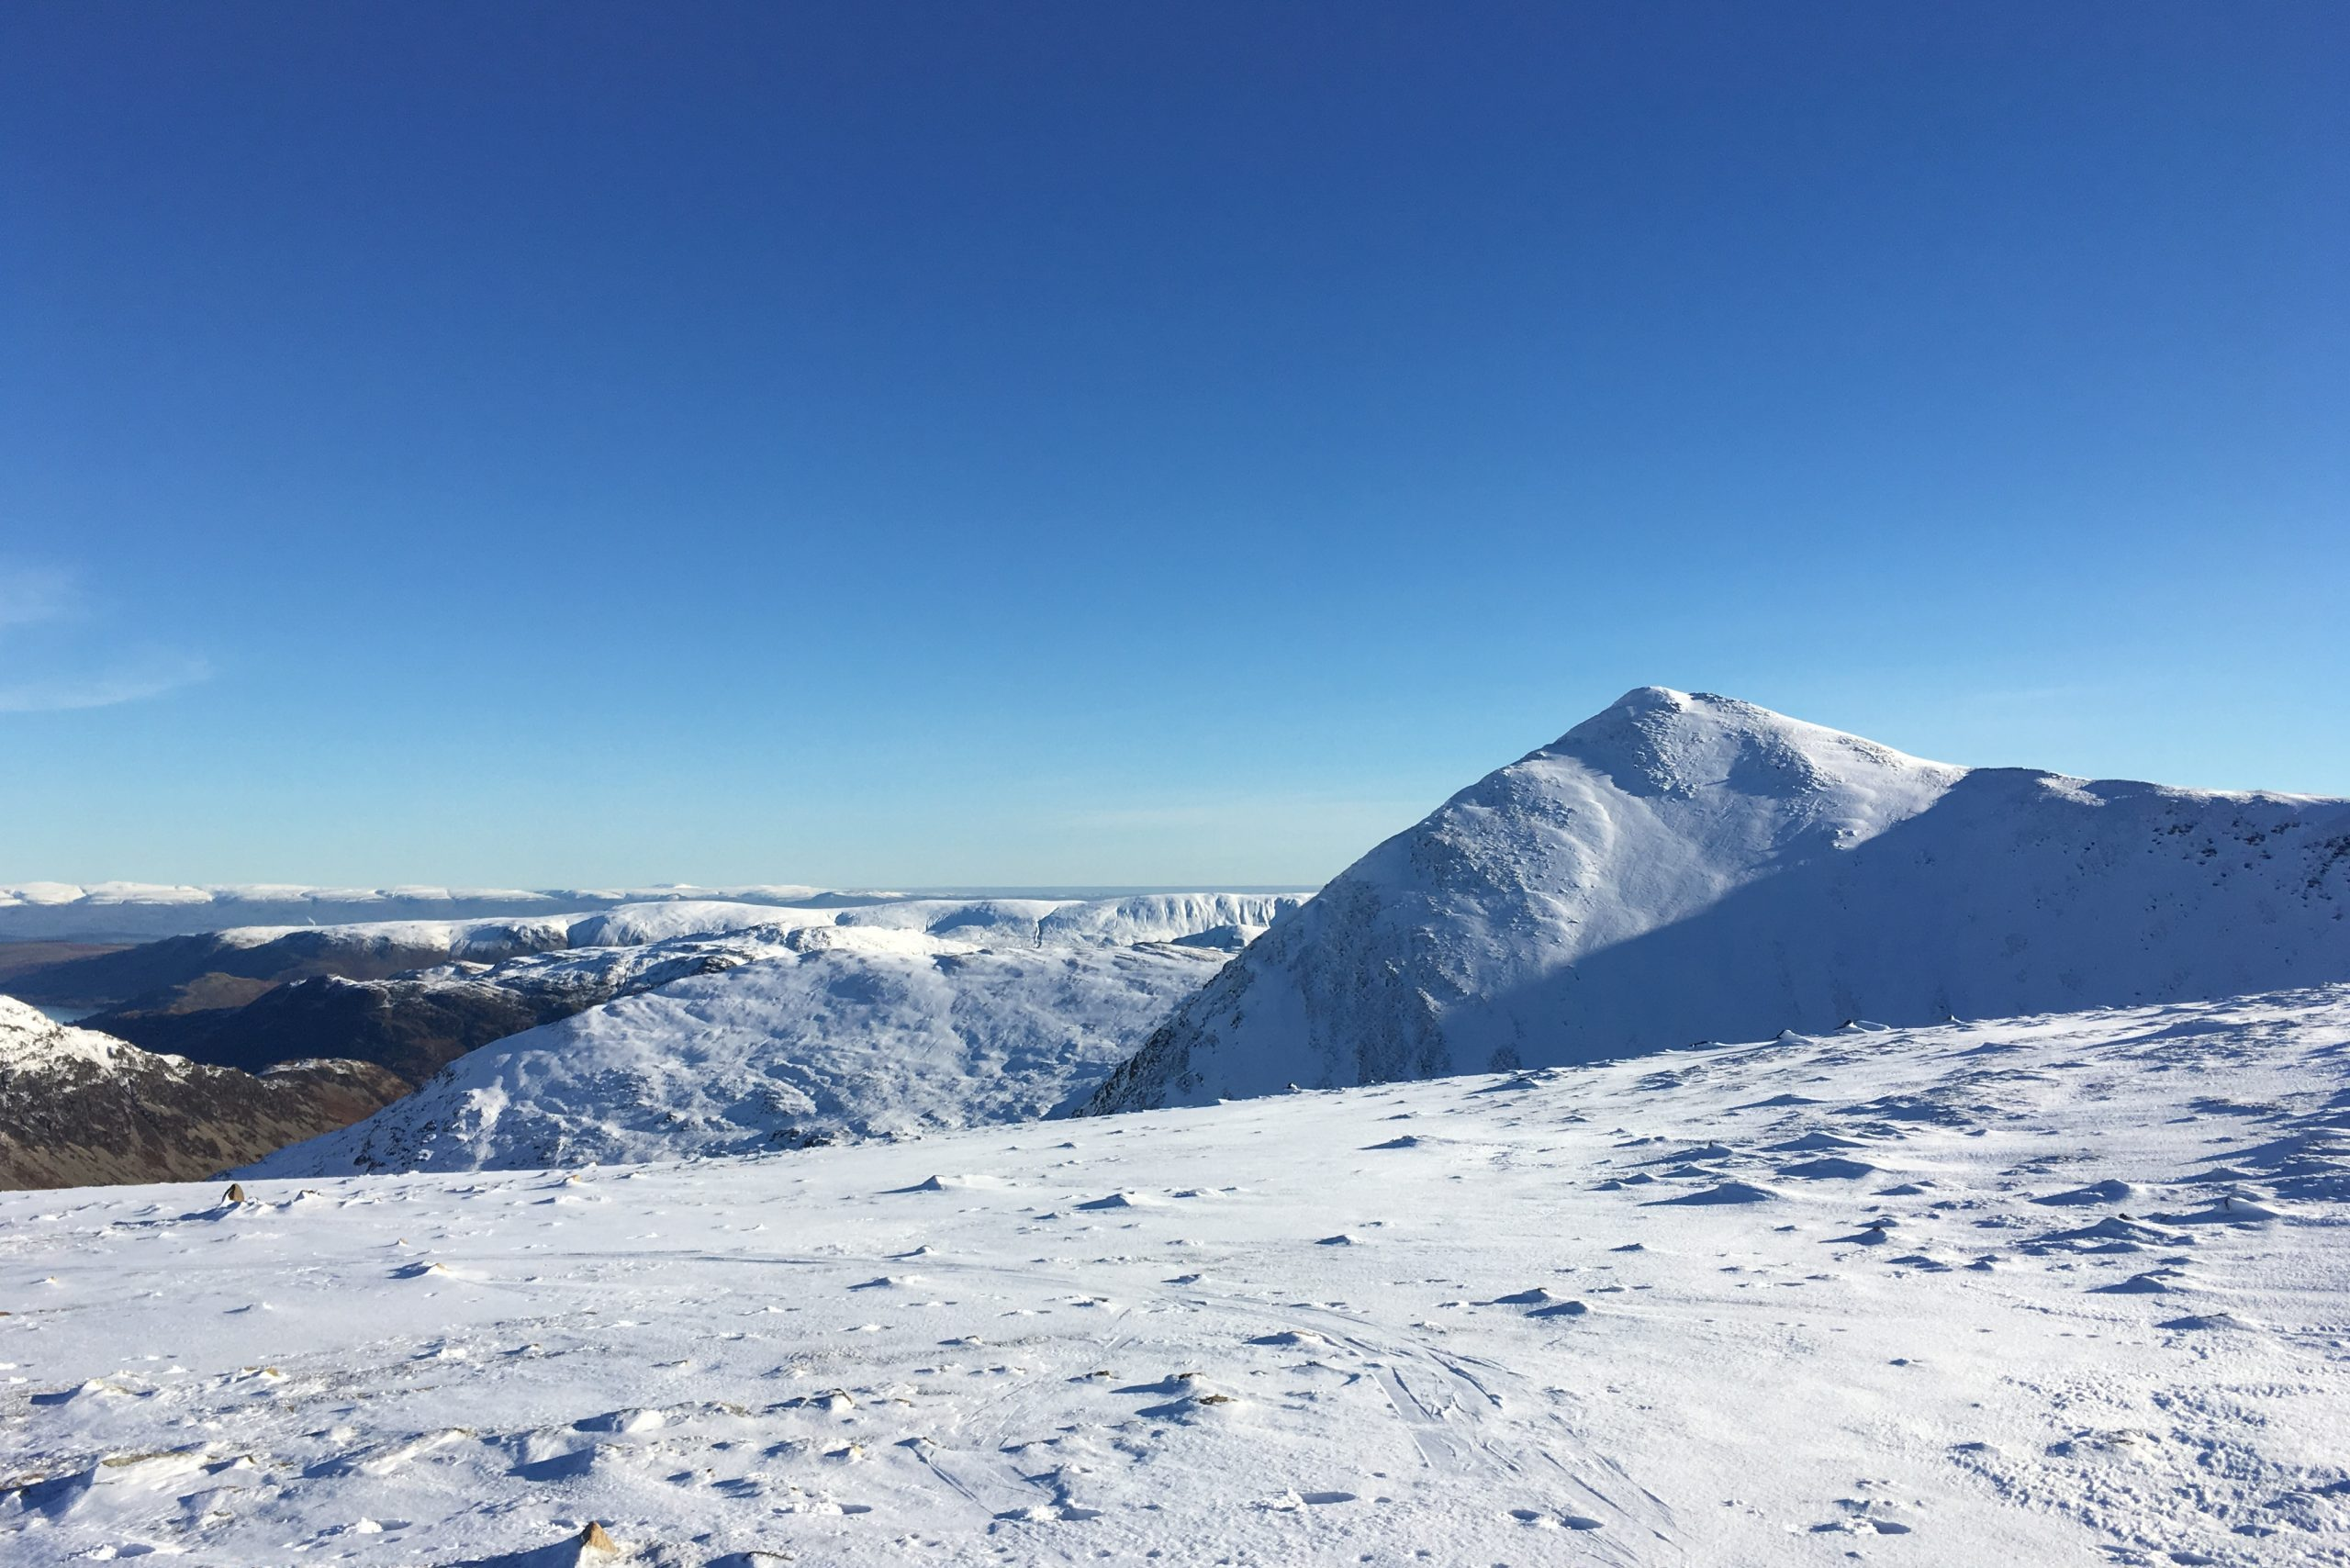 A snowy scene high up in the Lake District hills near Helvellyn during a winter skills course